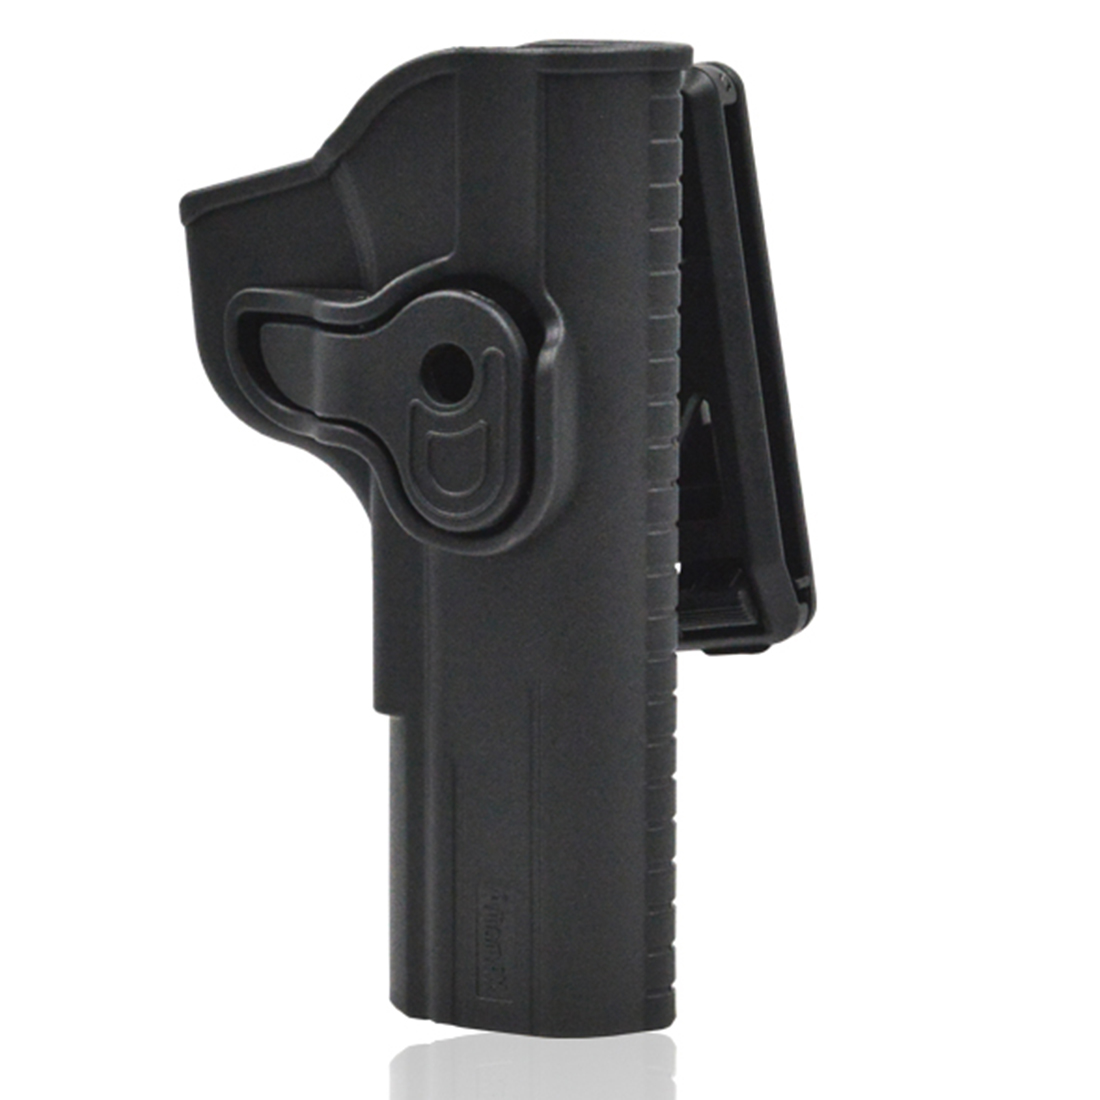 Surwish Adjustable Tactical Holster For Tokarev TT-33  Outdoors Tactics Accessories  High Quality  - Right-Handed Black